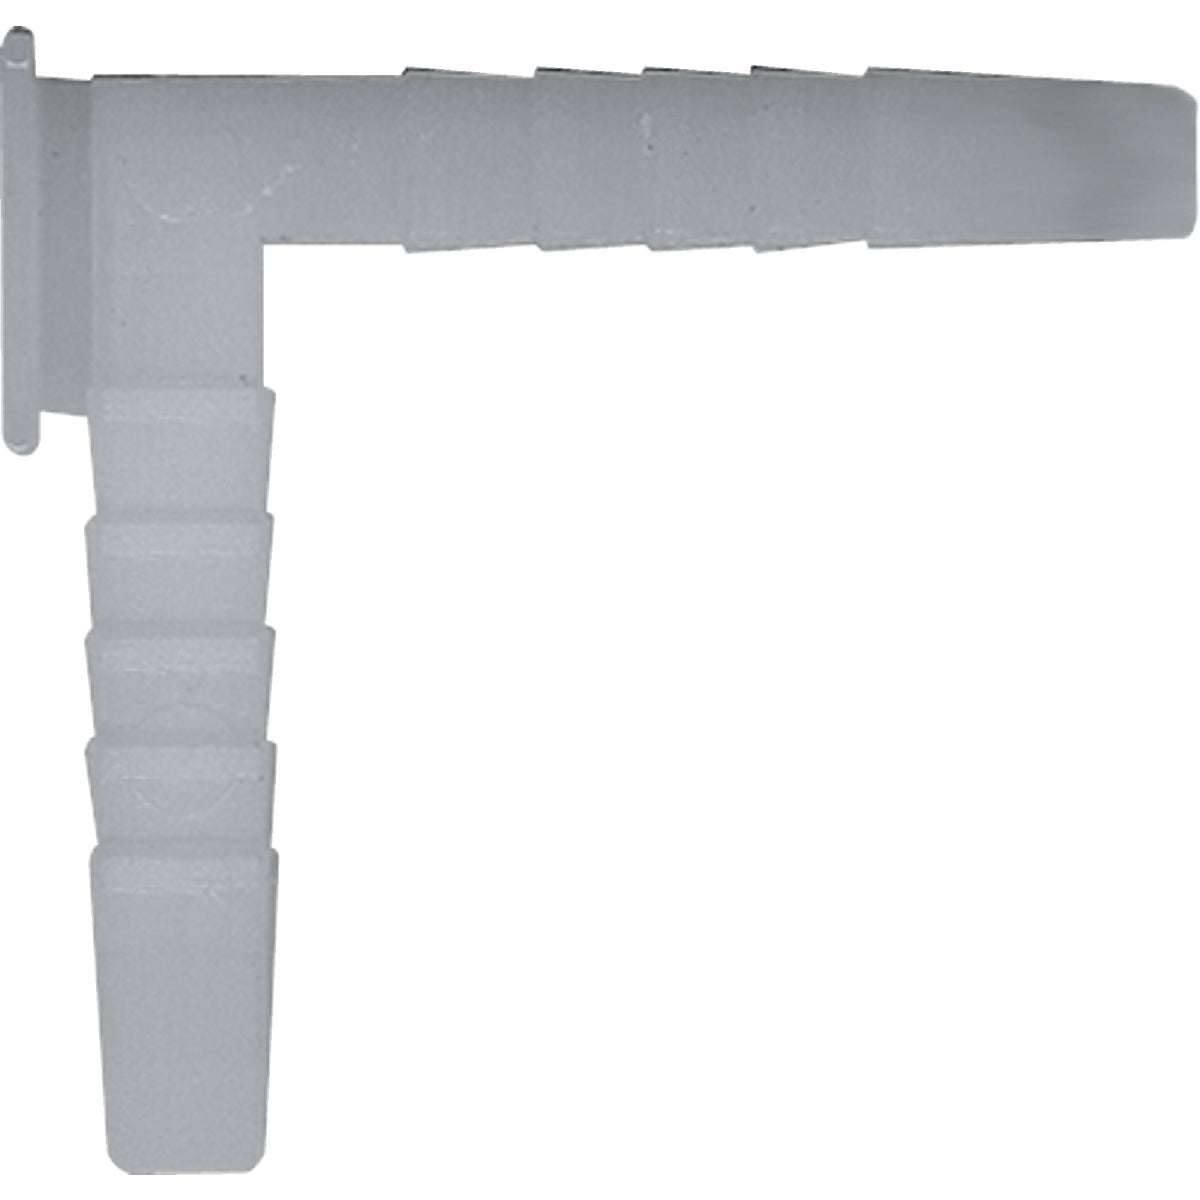 7/32X7/32 NYL CORNER KEY - PL14966 by Prime Line Products